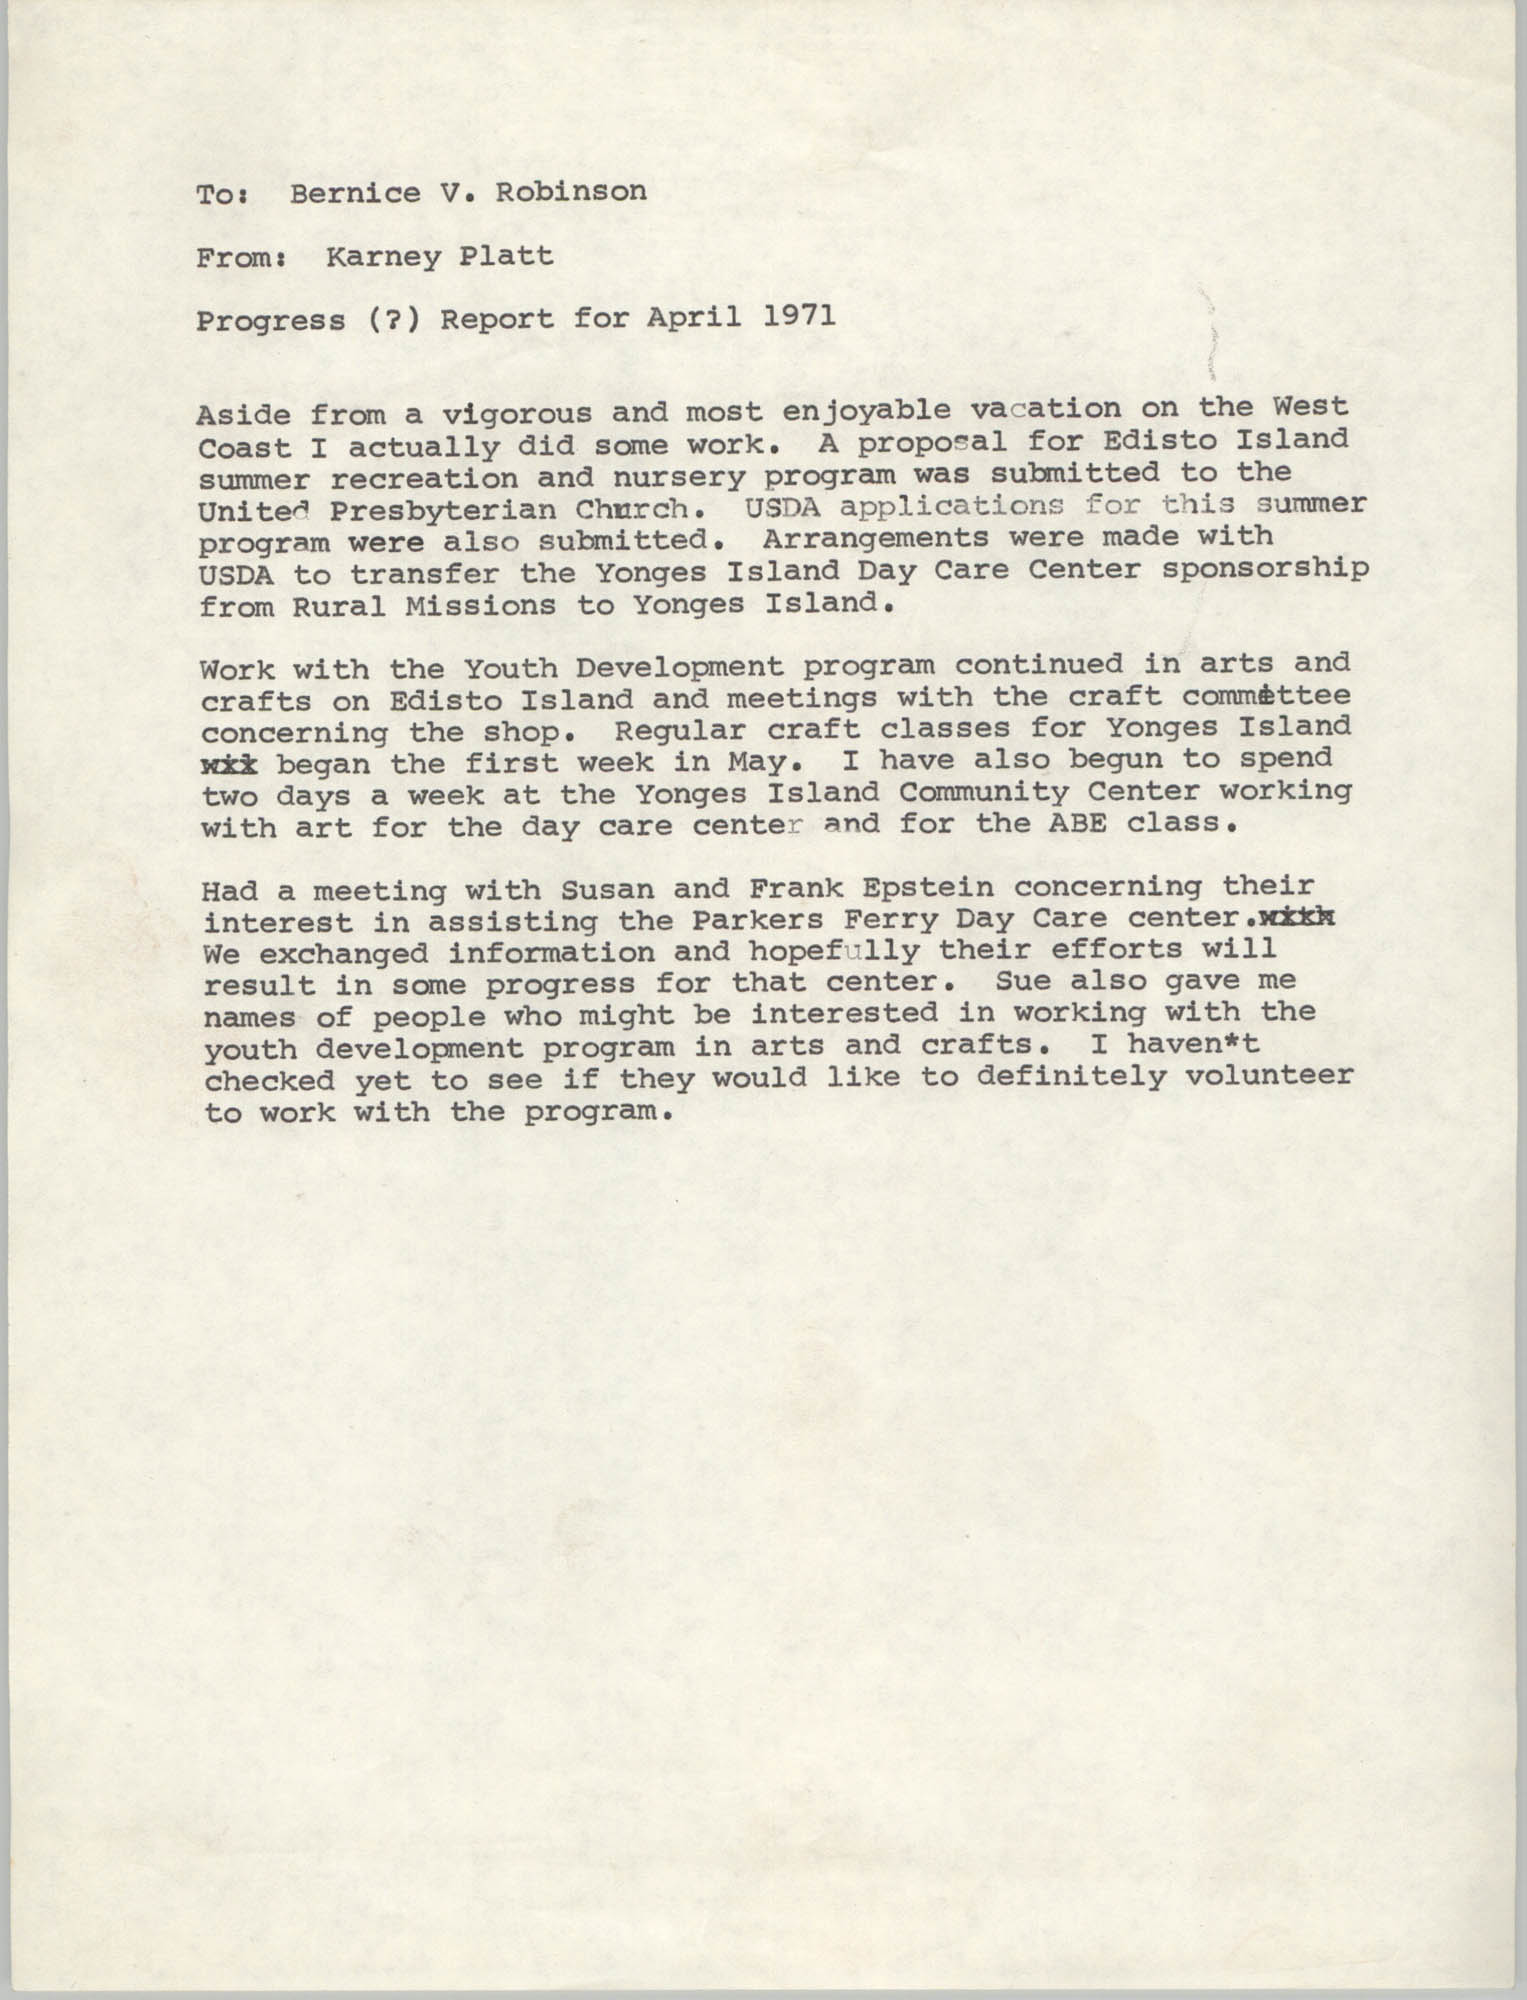 VISTA Progress Report, April 1971